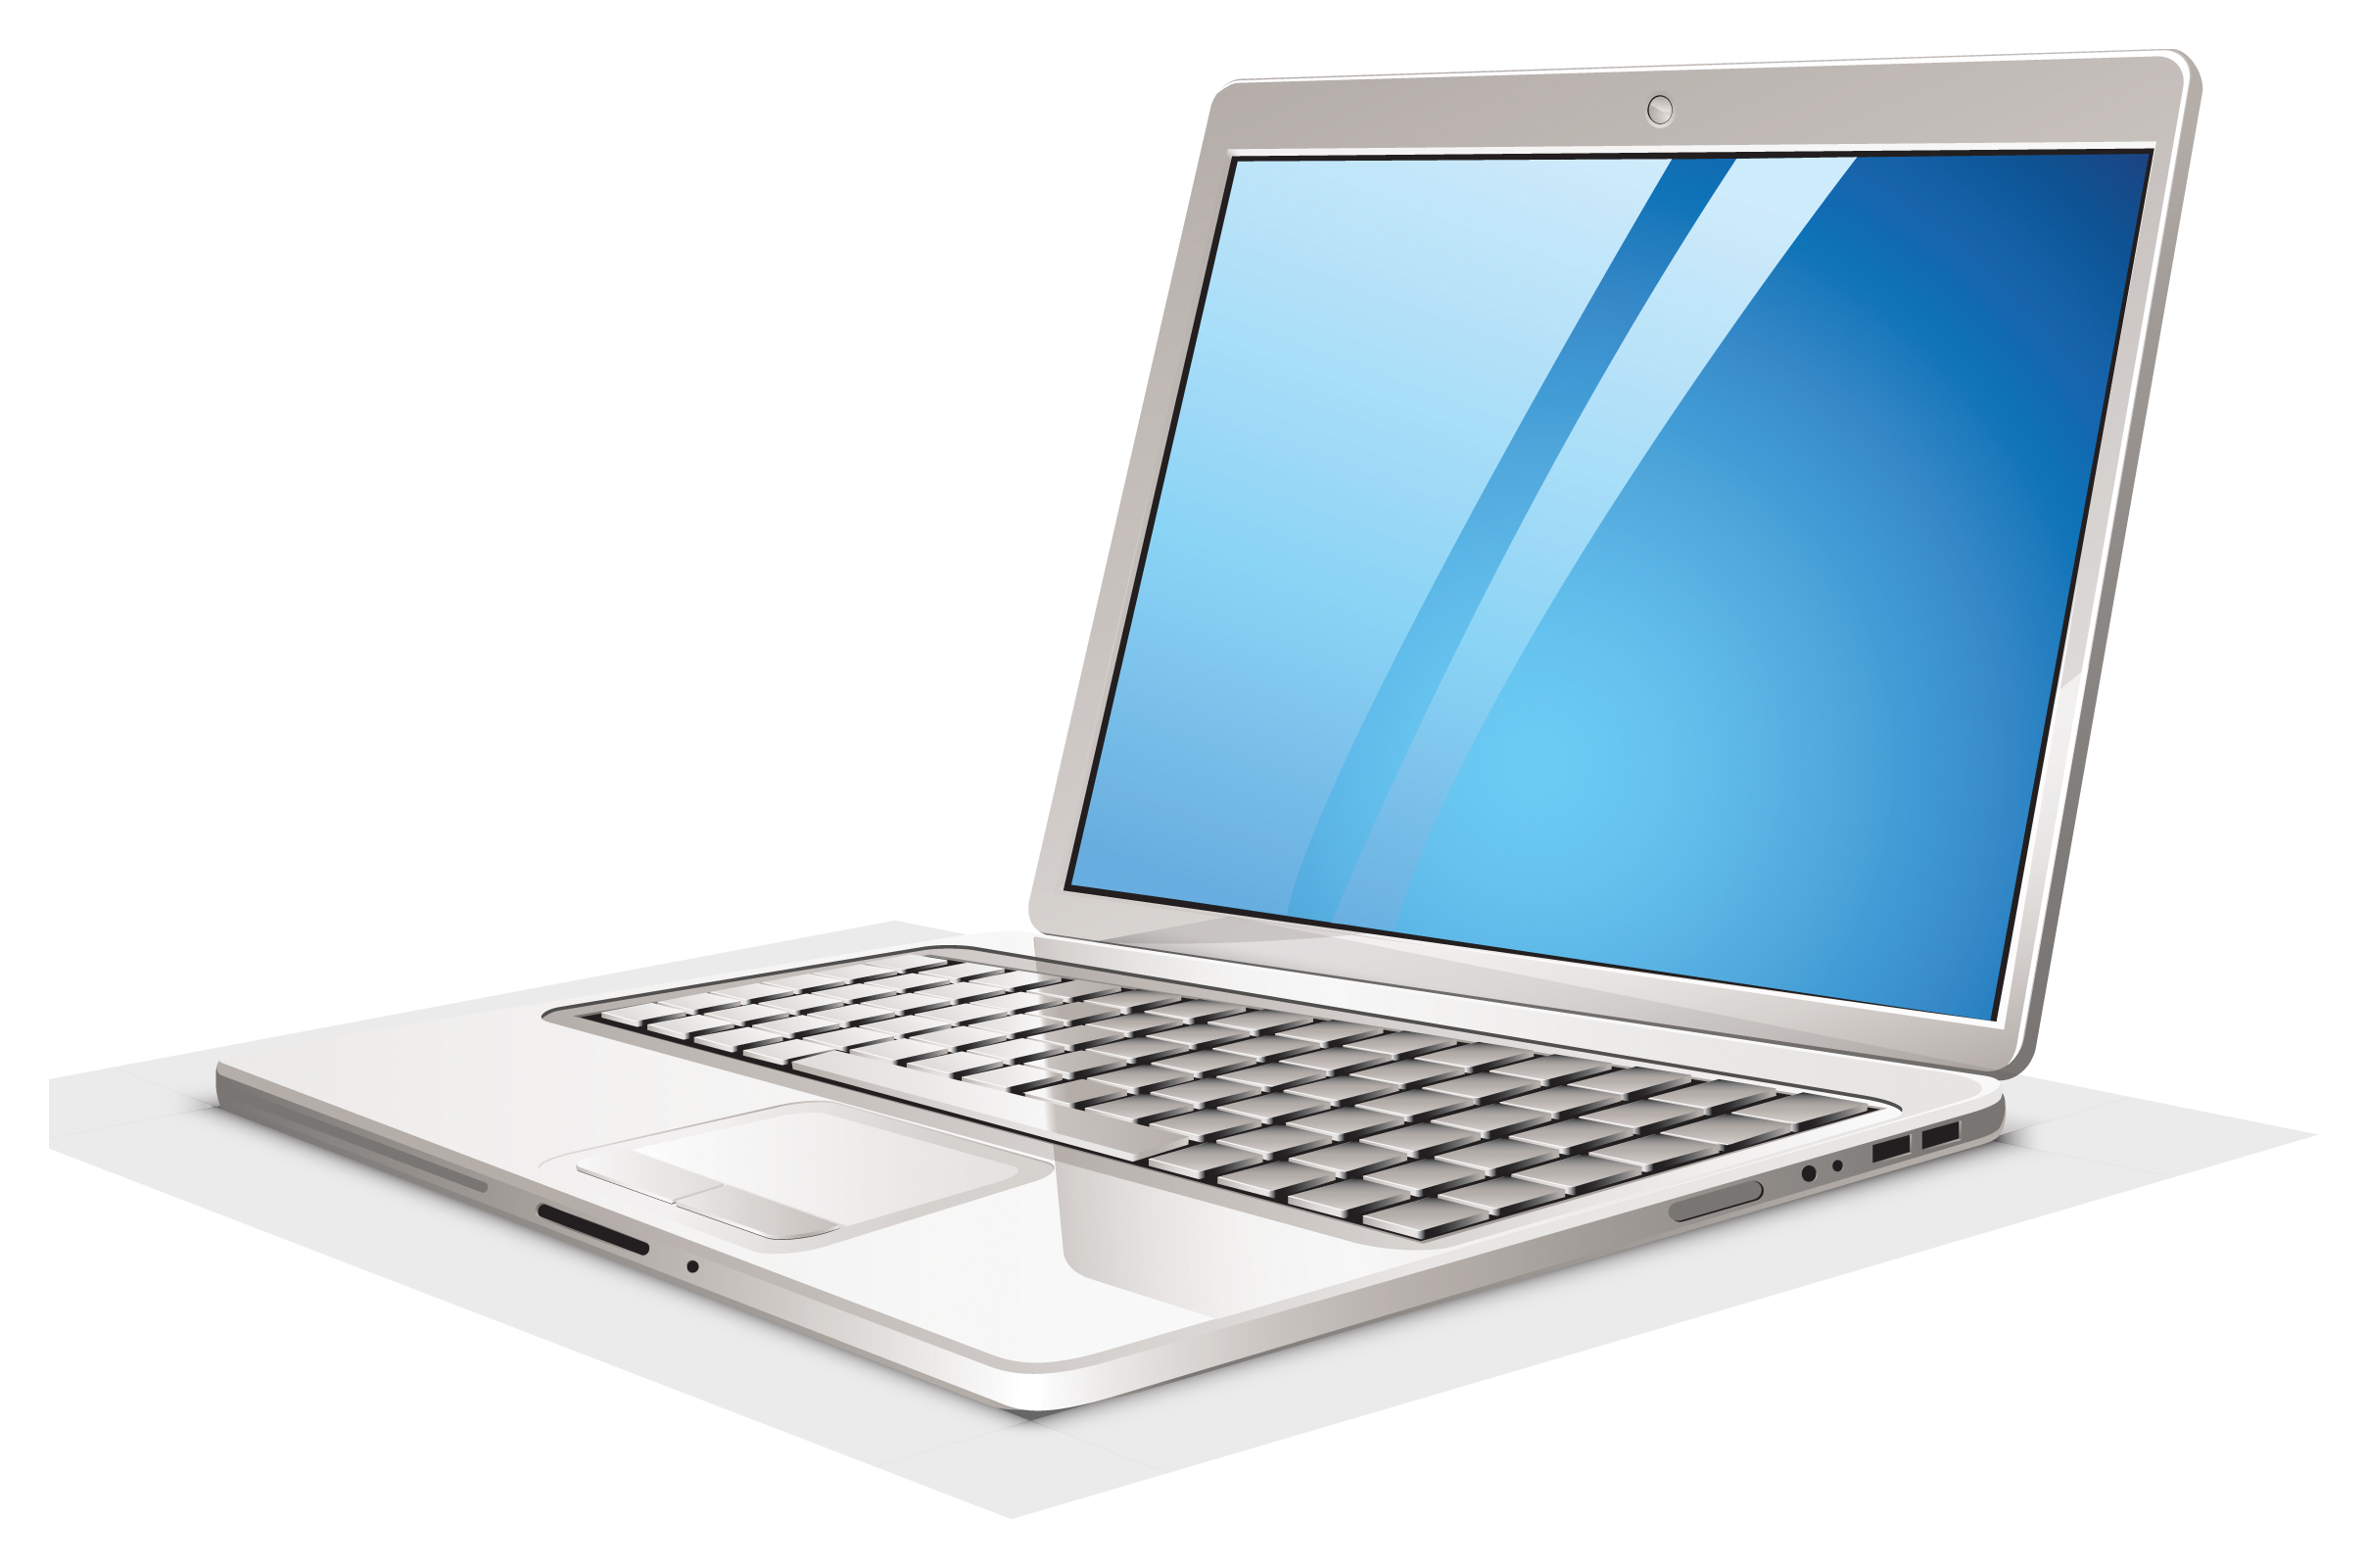 Free transparent images pluspng. Png laptop jpg library library